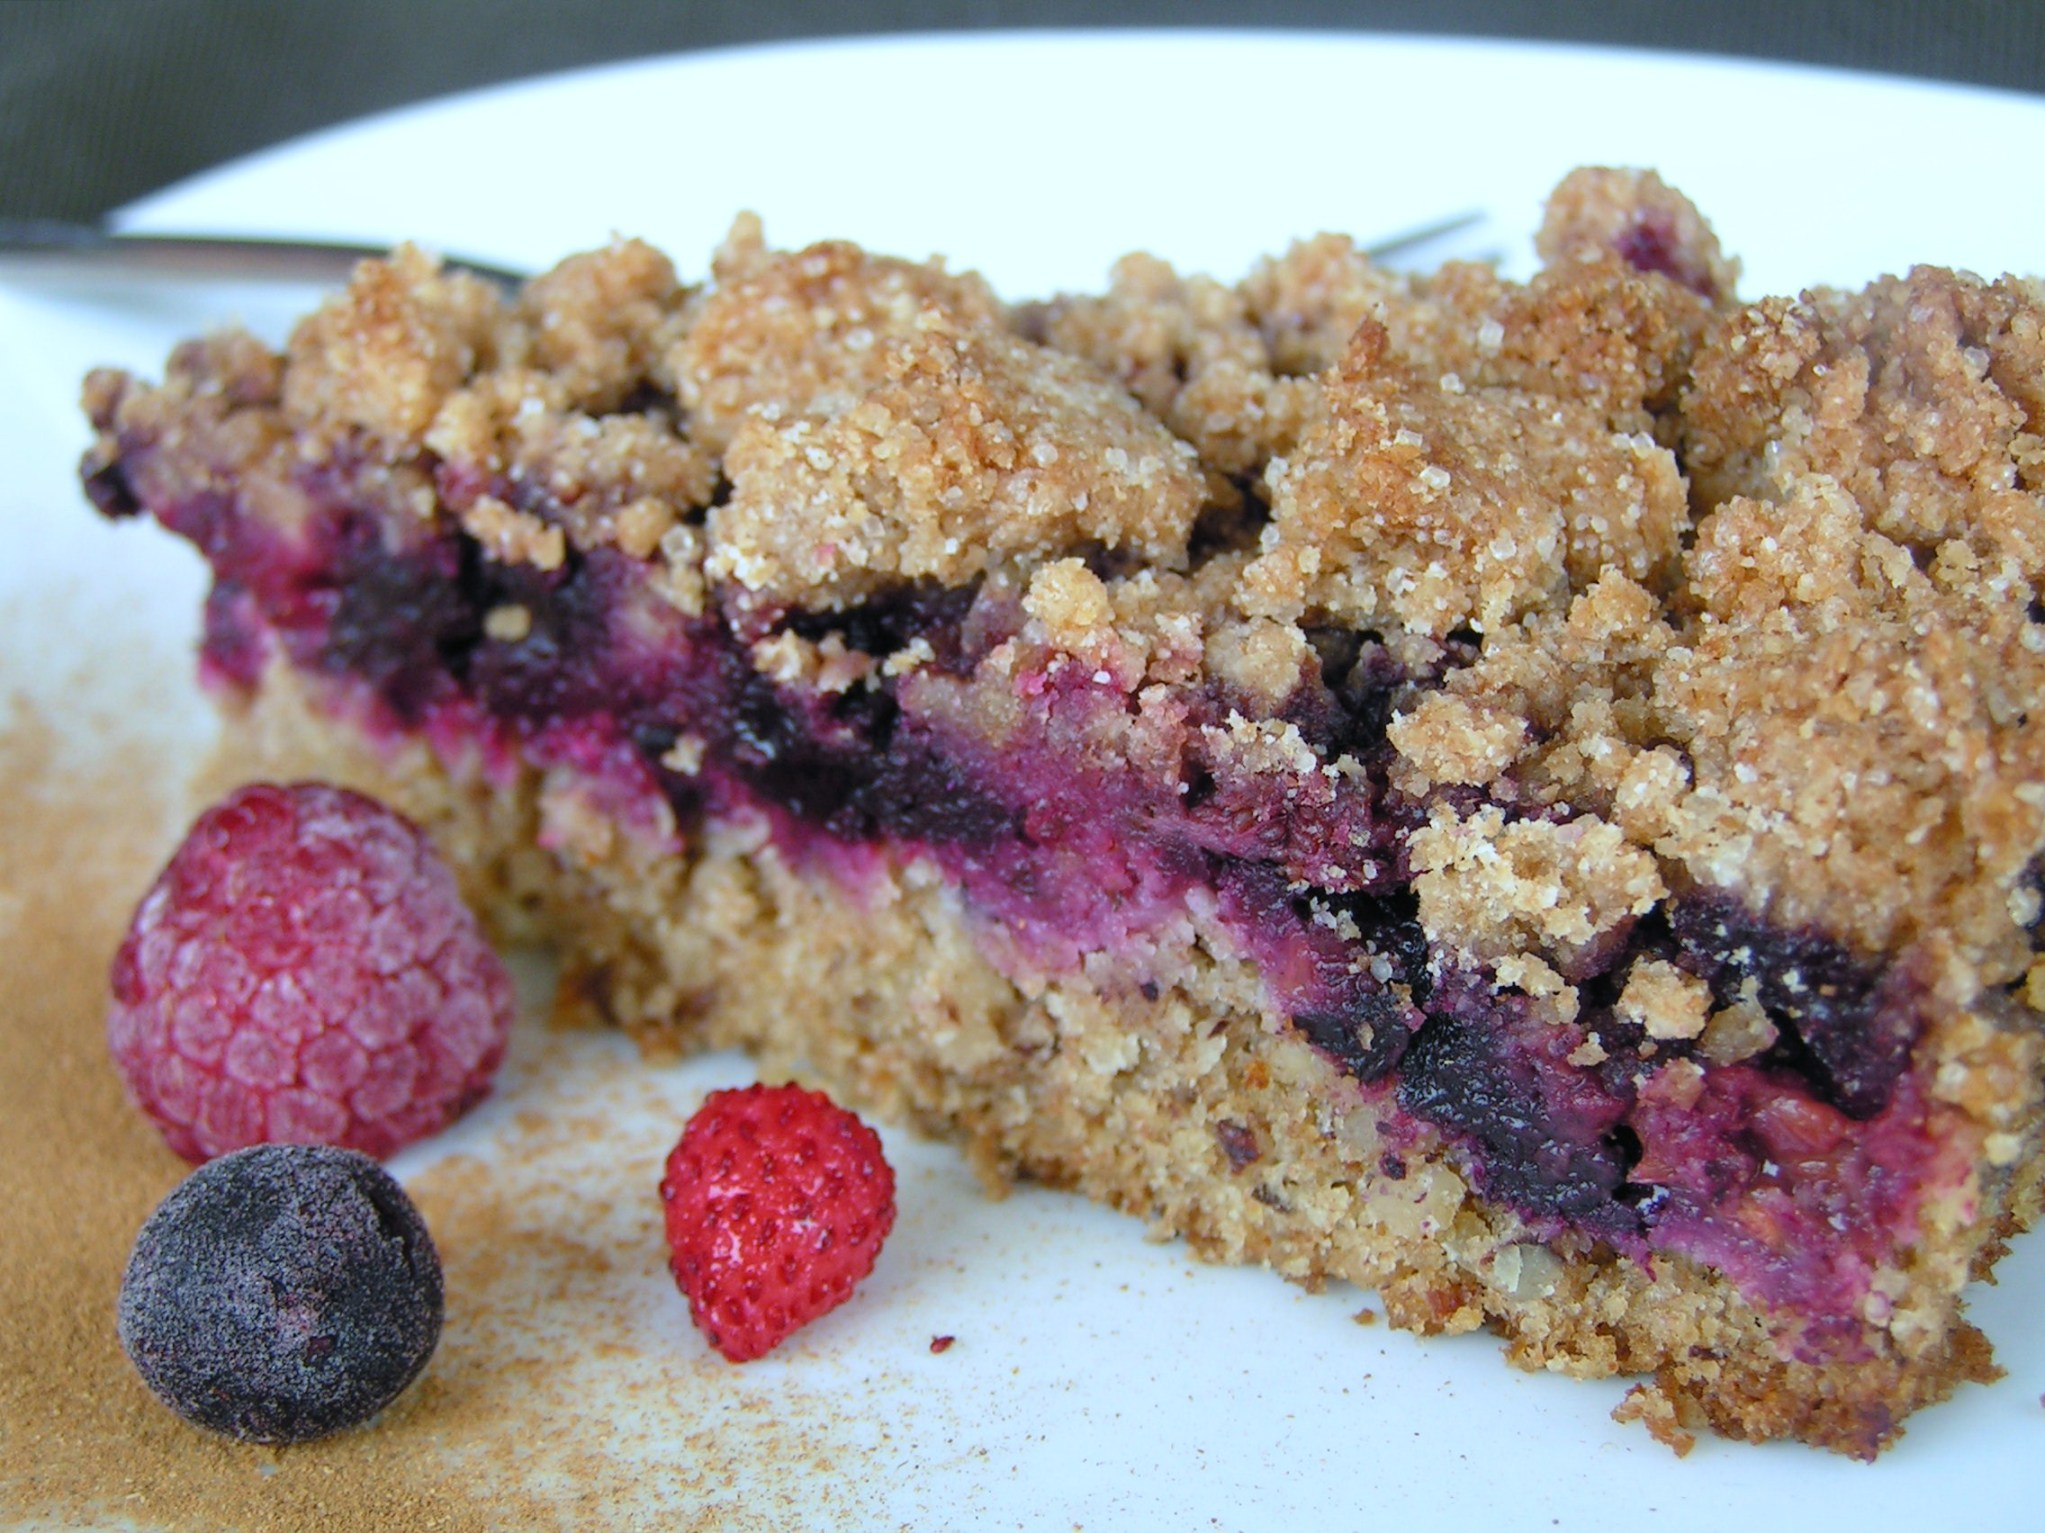 Berry Cake with Crumbles